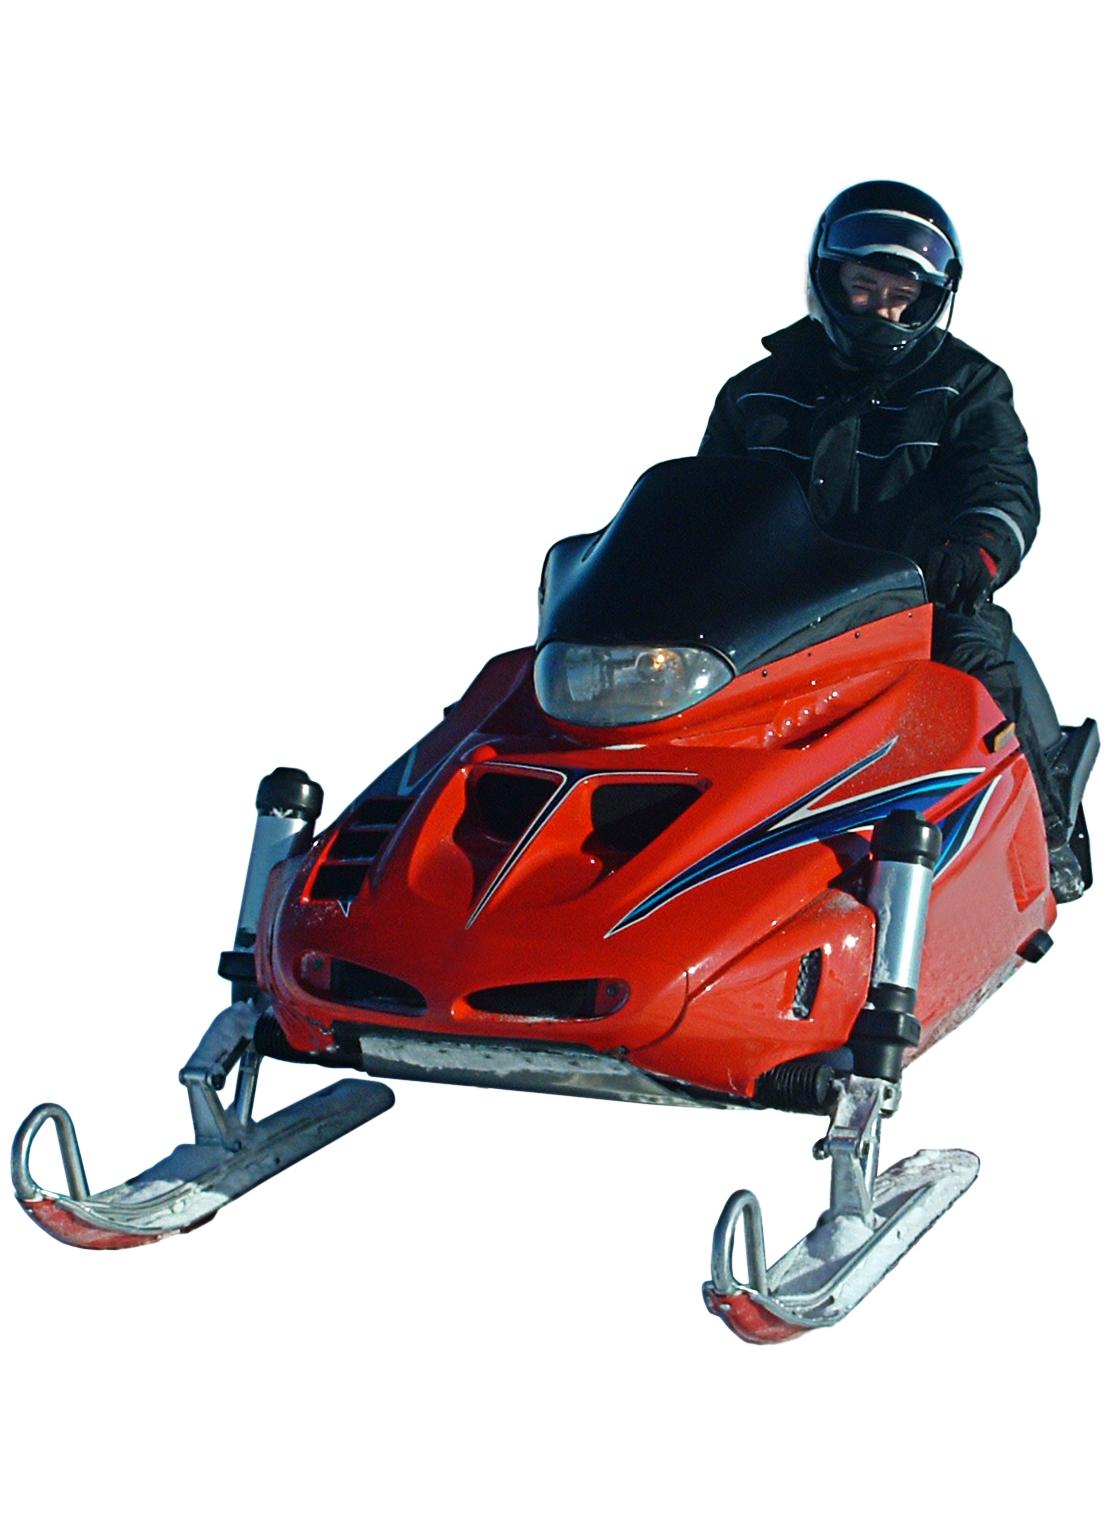 Insurance for Snowmobile Operations